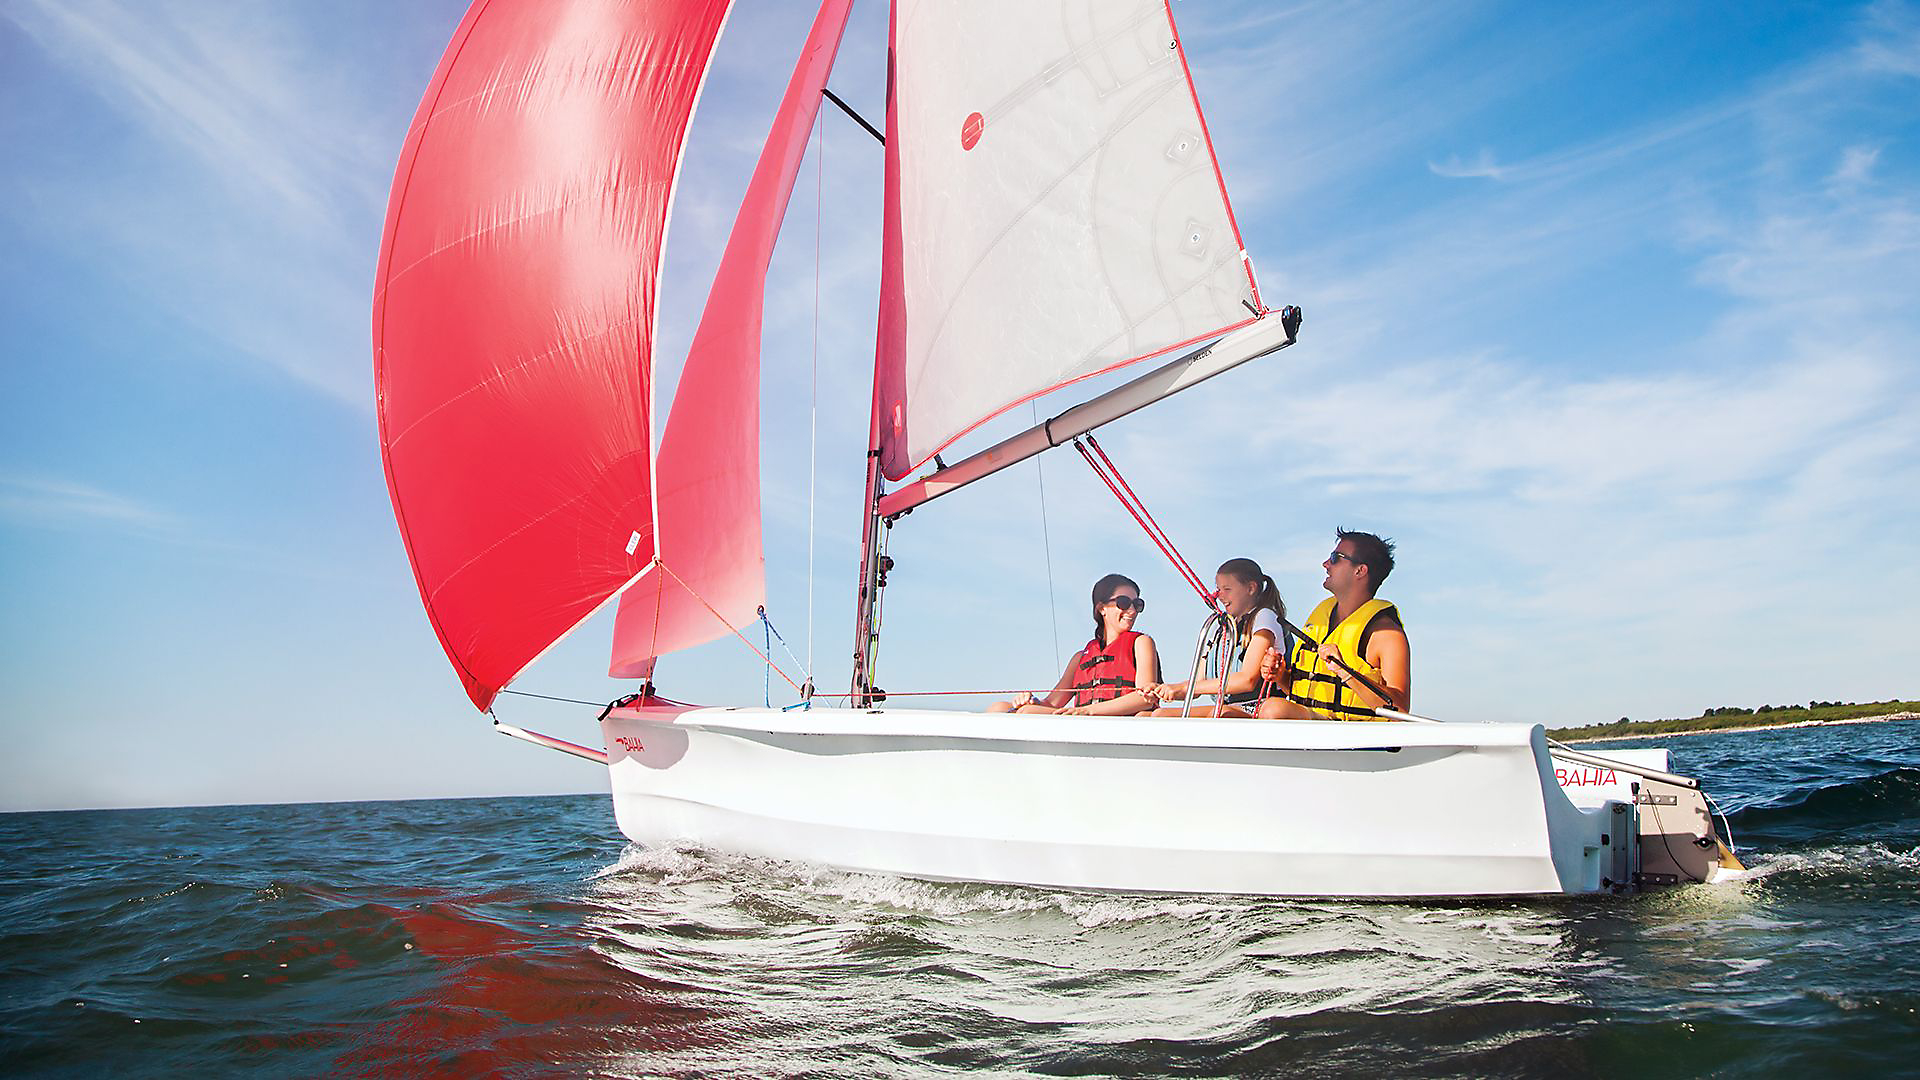 Laser Bahia sailing with a young family